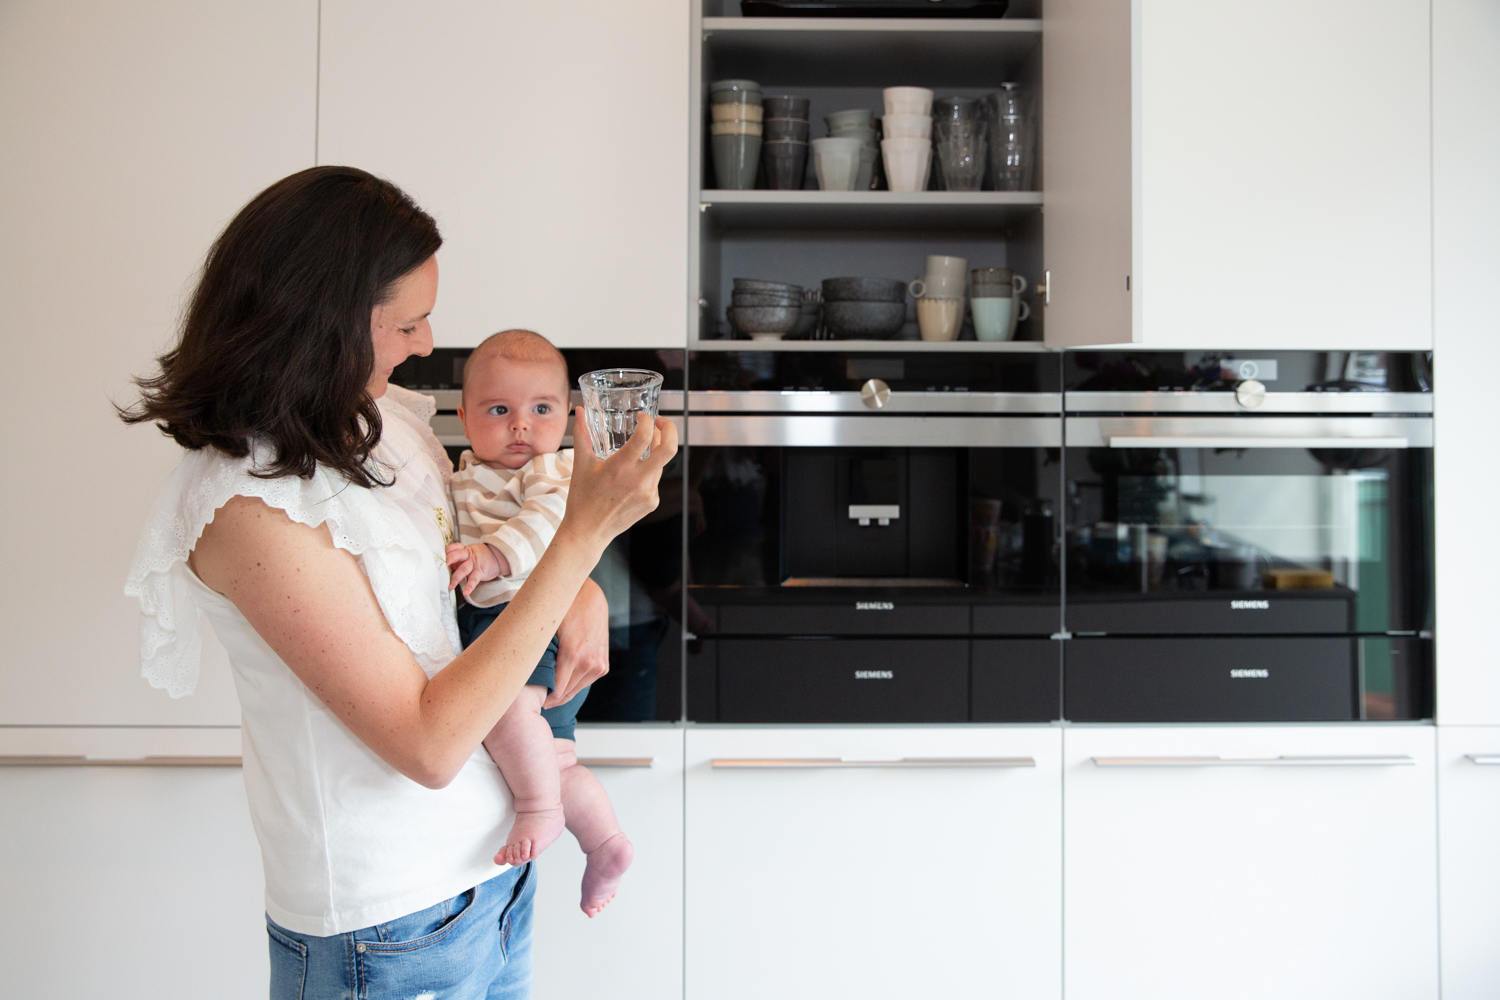 Woman holding baby in a kitchen while holding a glass